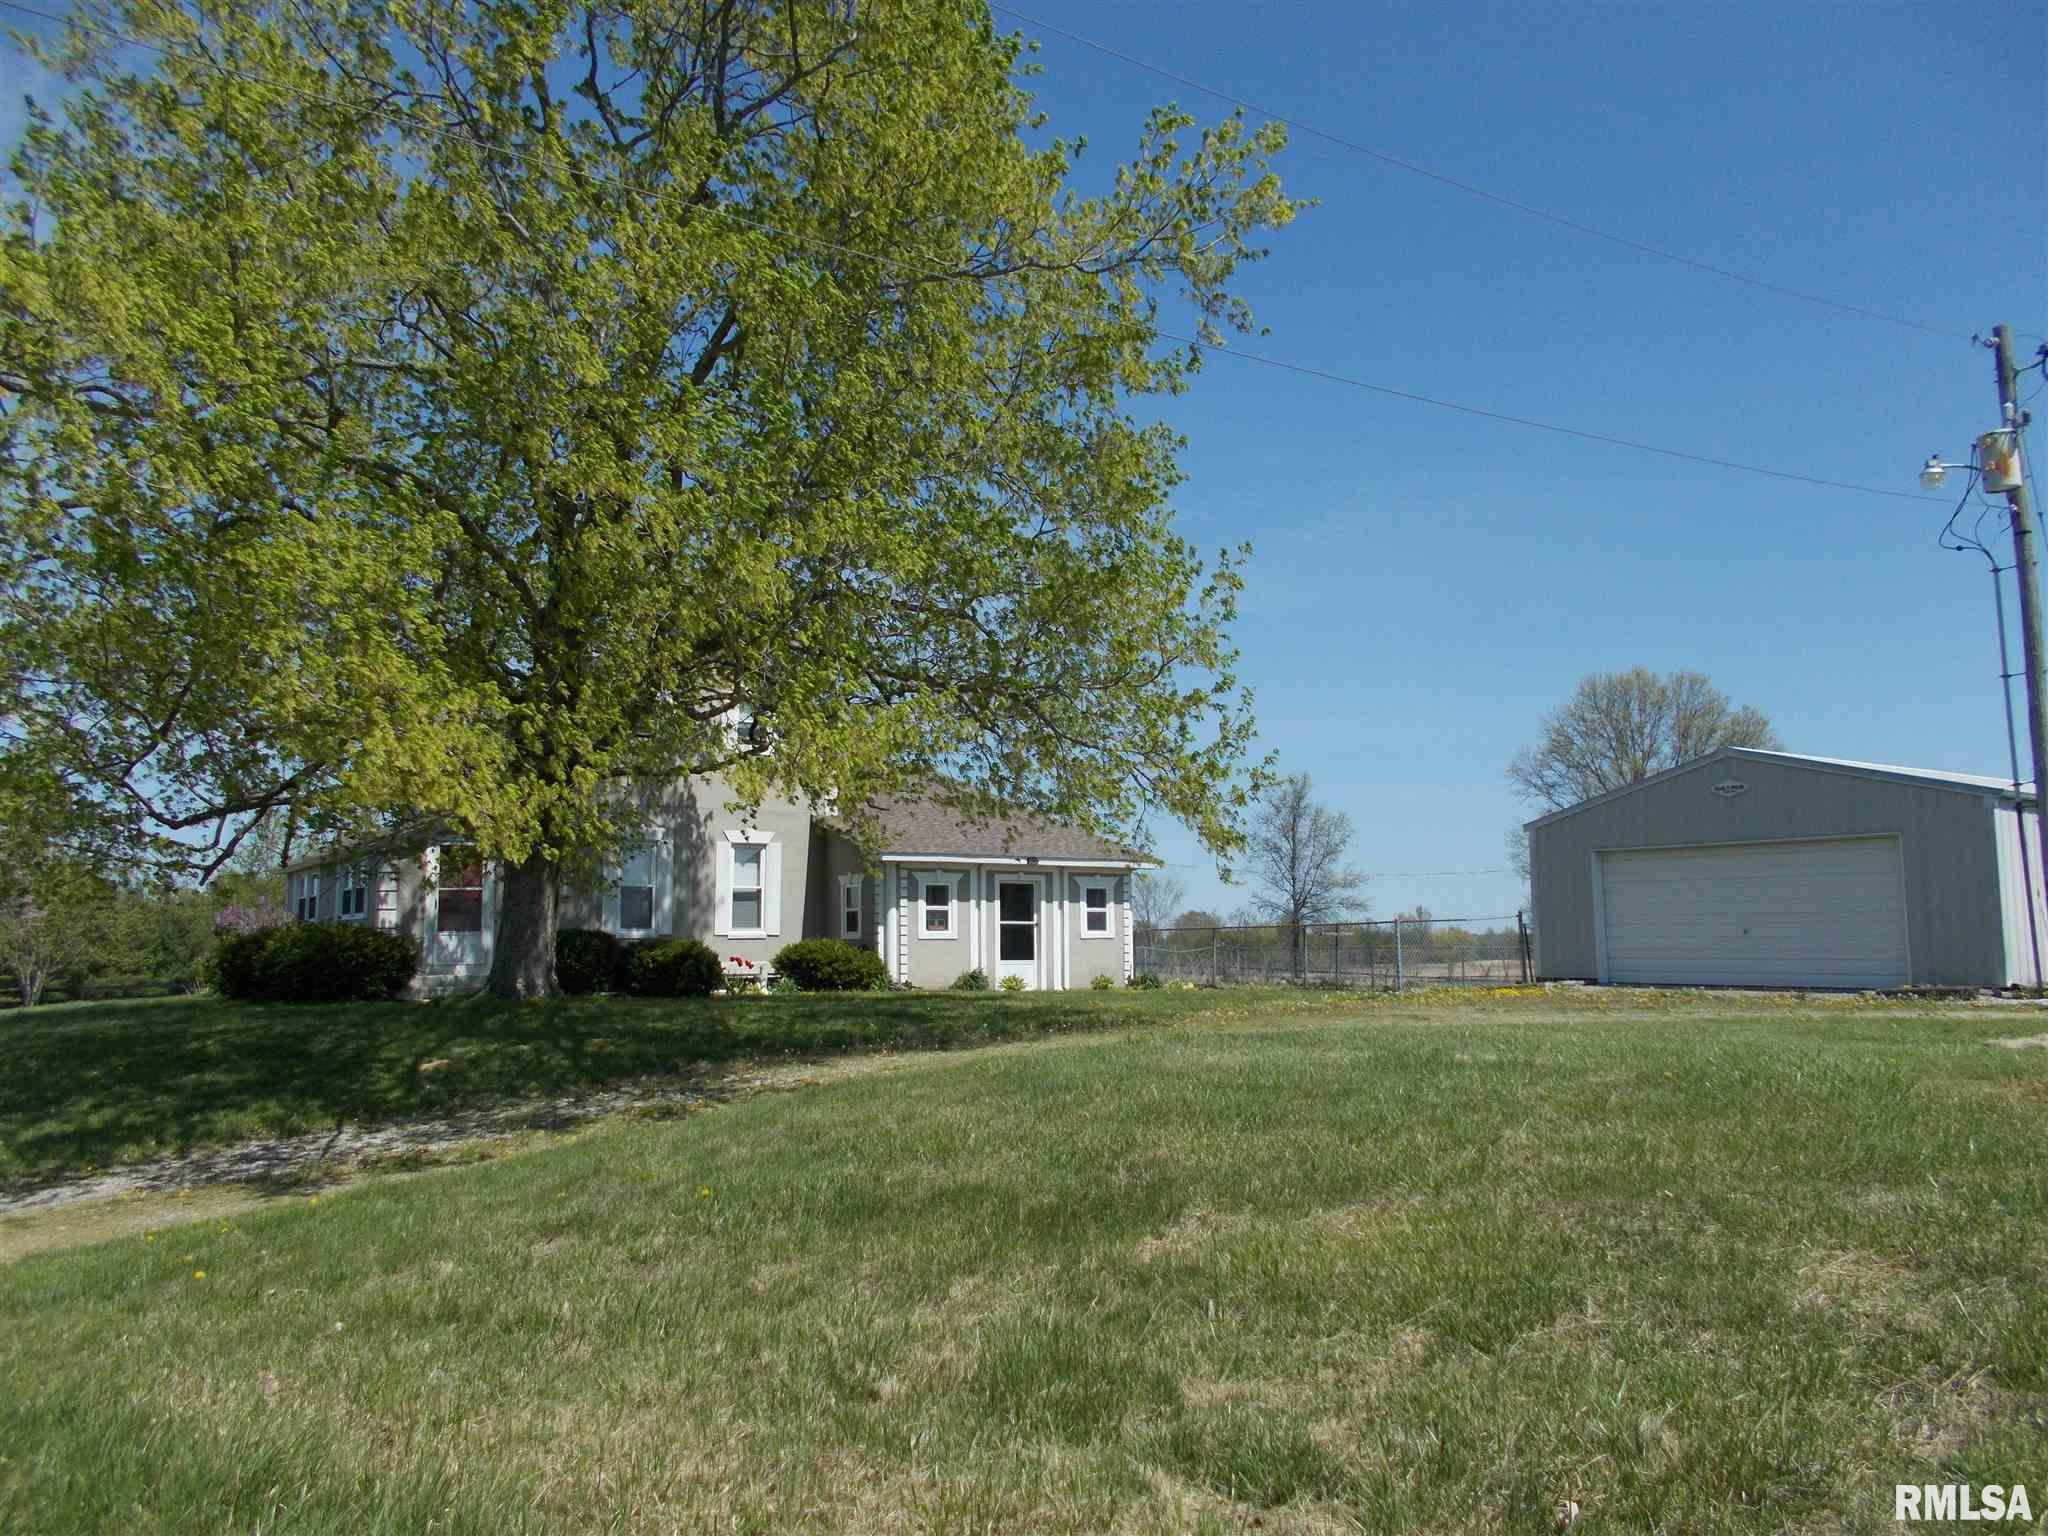 23750 N IL Hwy 37 Property Photo - Dix, IL real estate listing